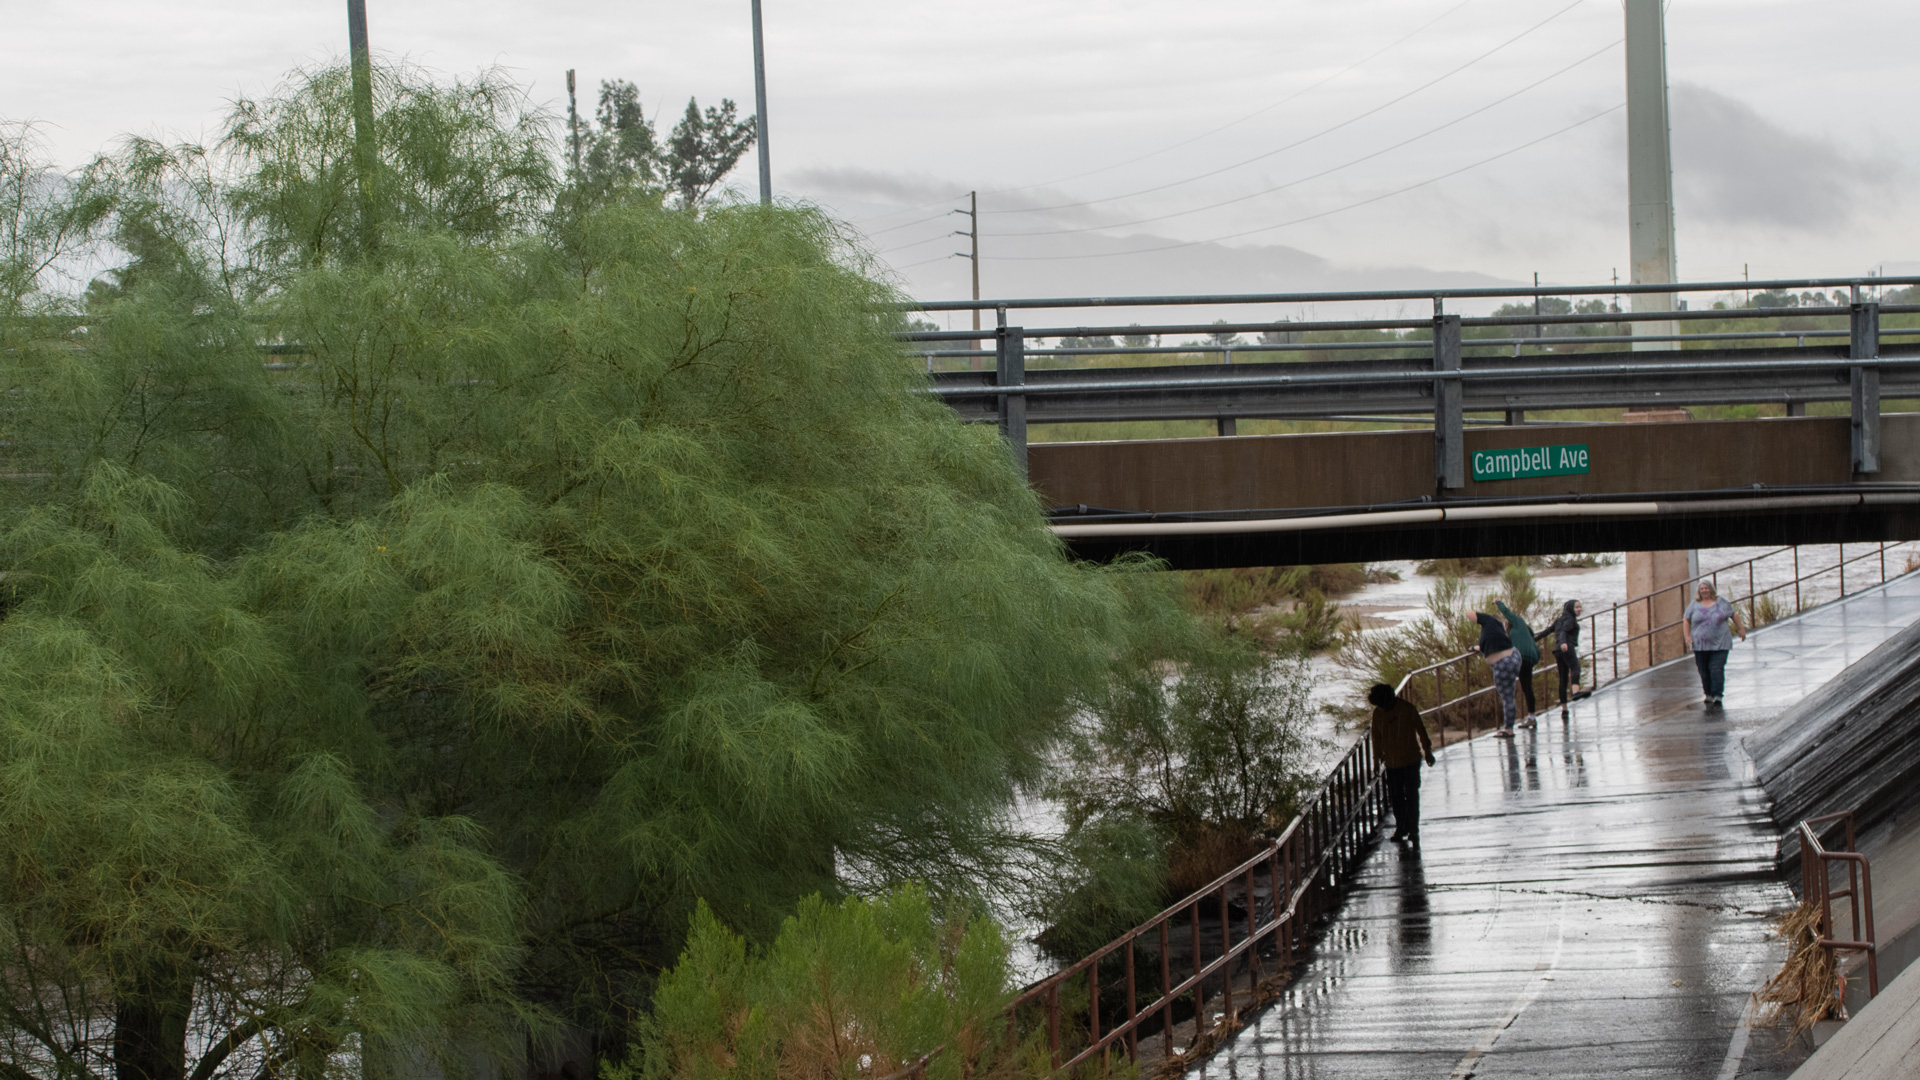 People stand under the Campbell Avenue bridge to watch the Rillito  run after a monsoon storm,  July 23, 2020. Rains cooled the city, and helped finish the job putting out the Bighorn Fire.